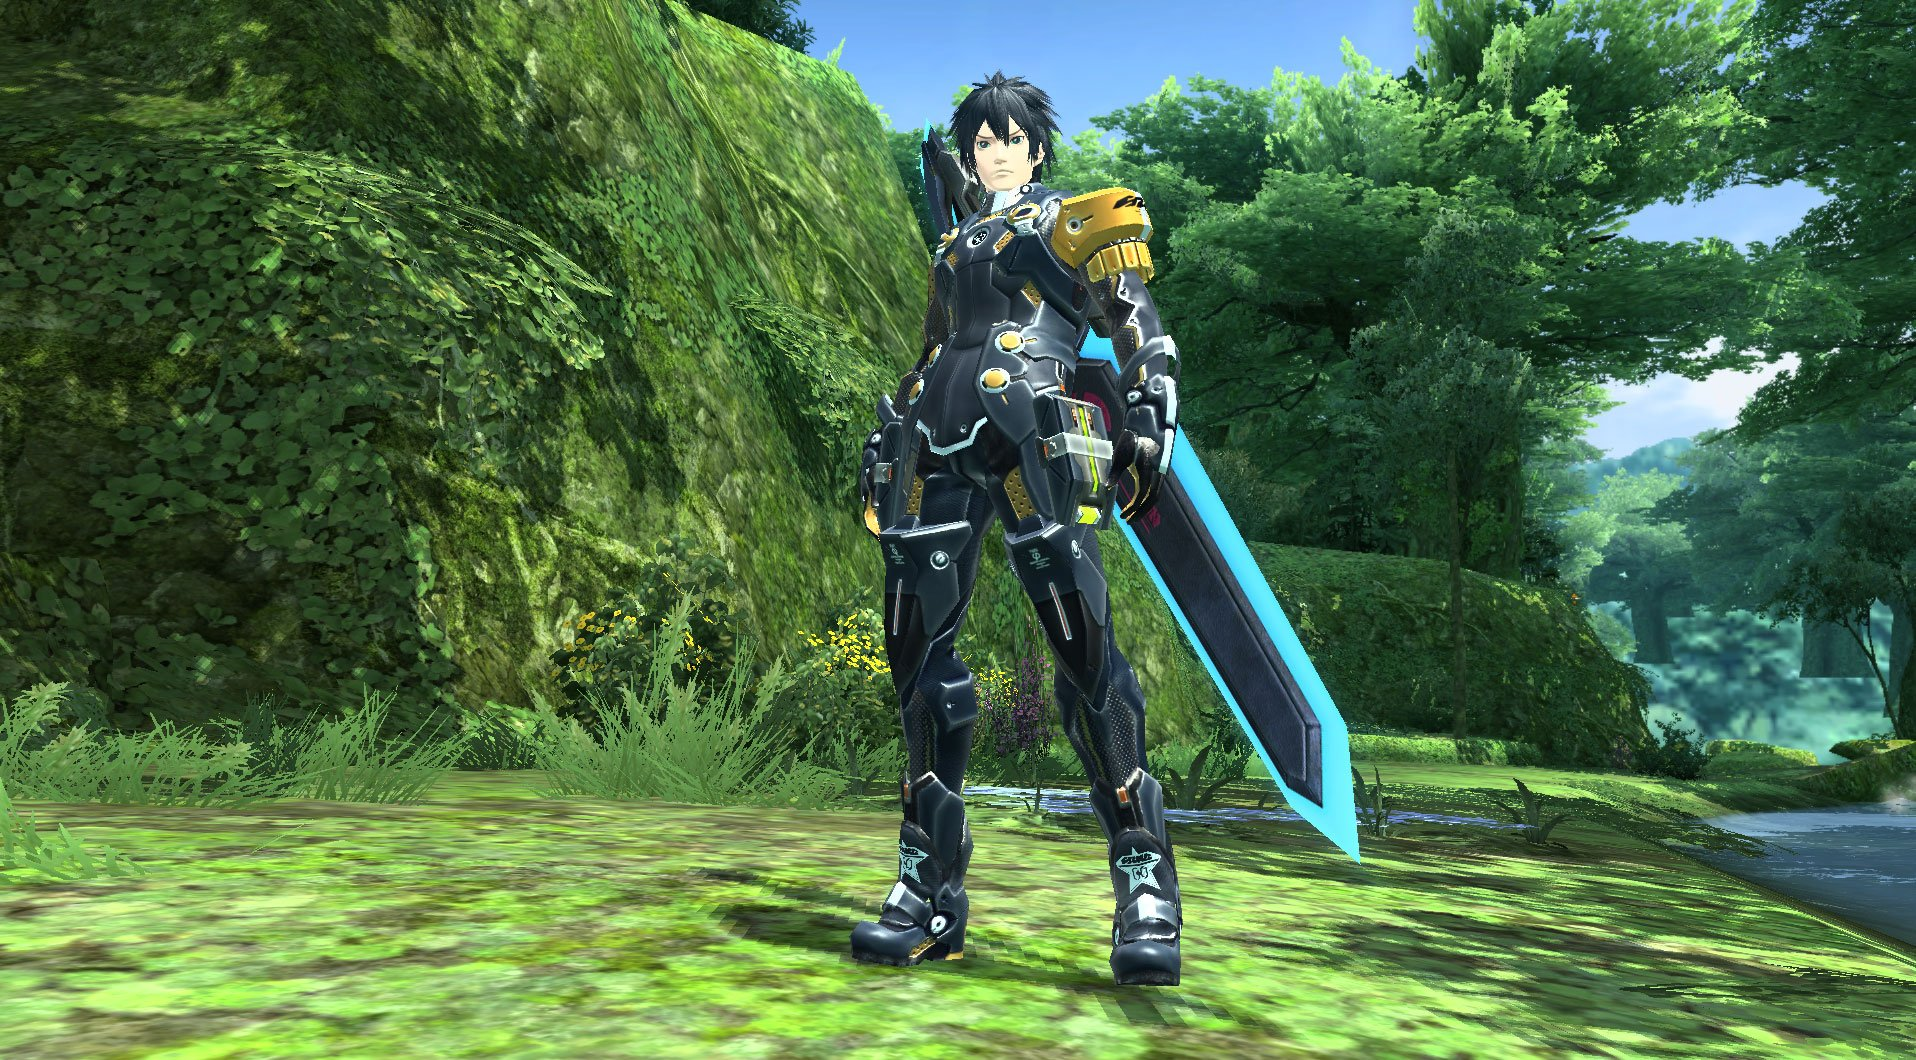 Phantasy star online 2 release date ps4